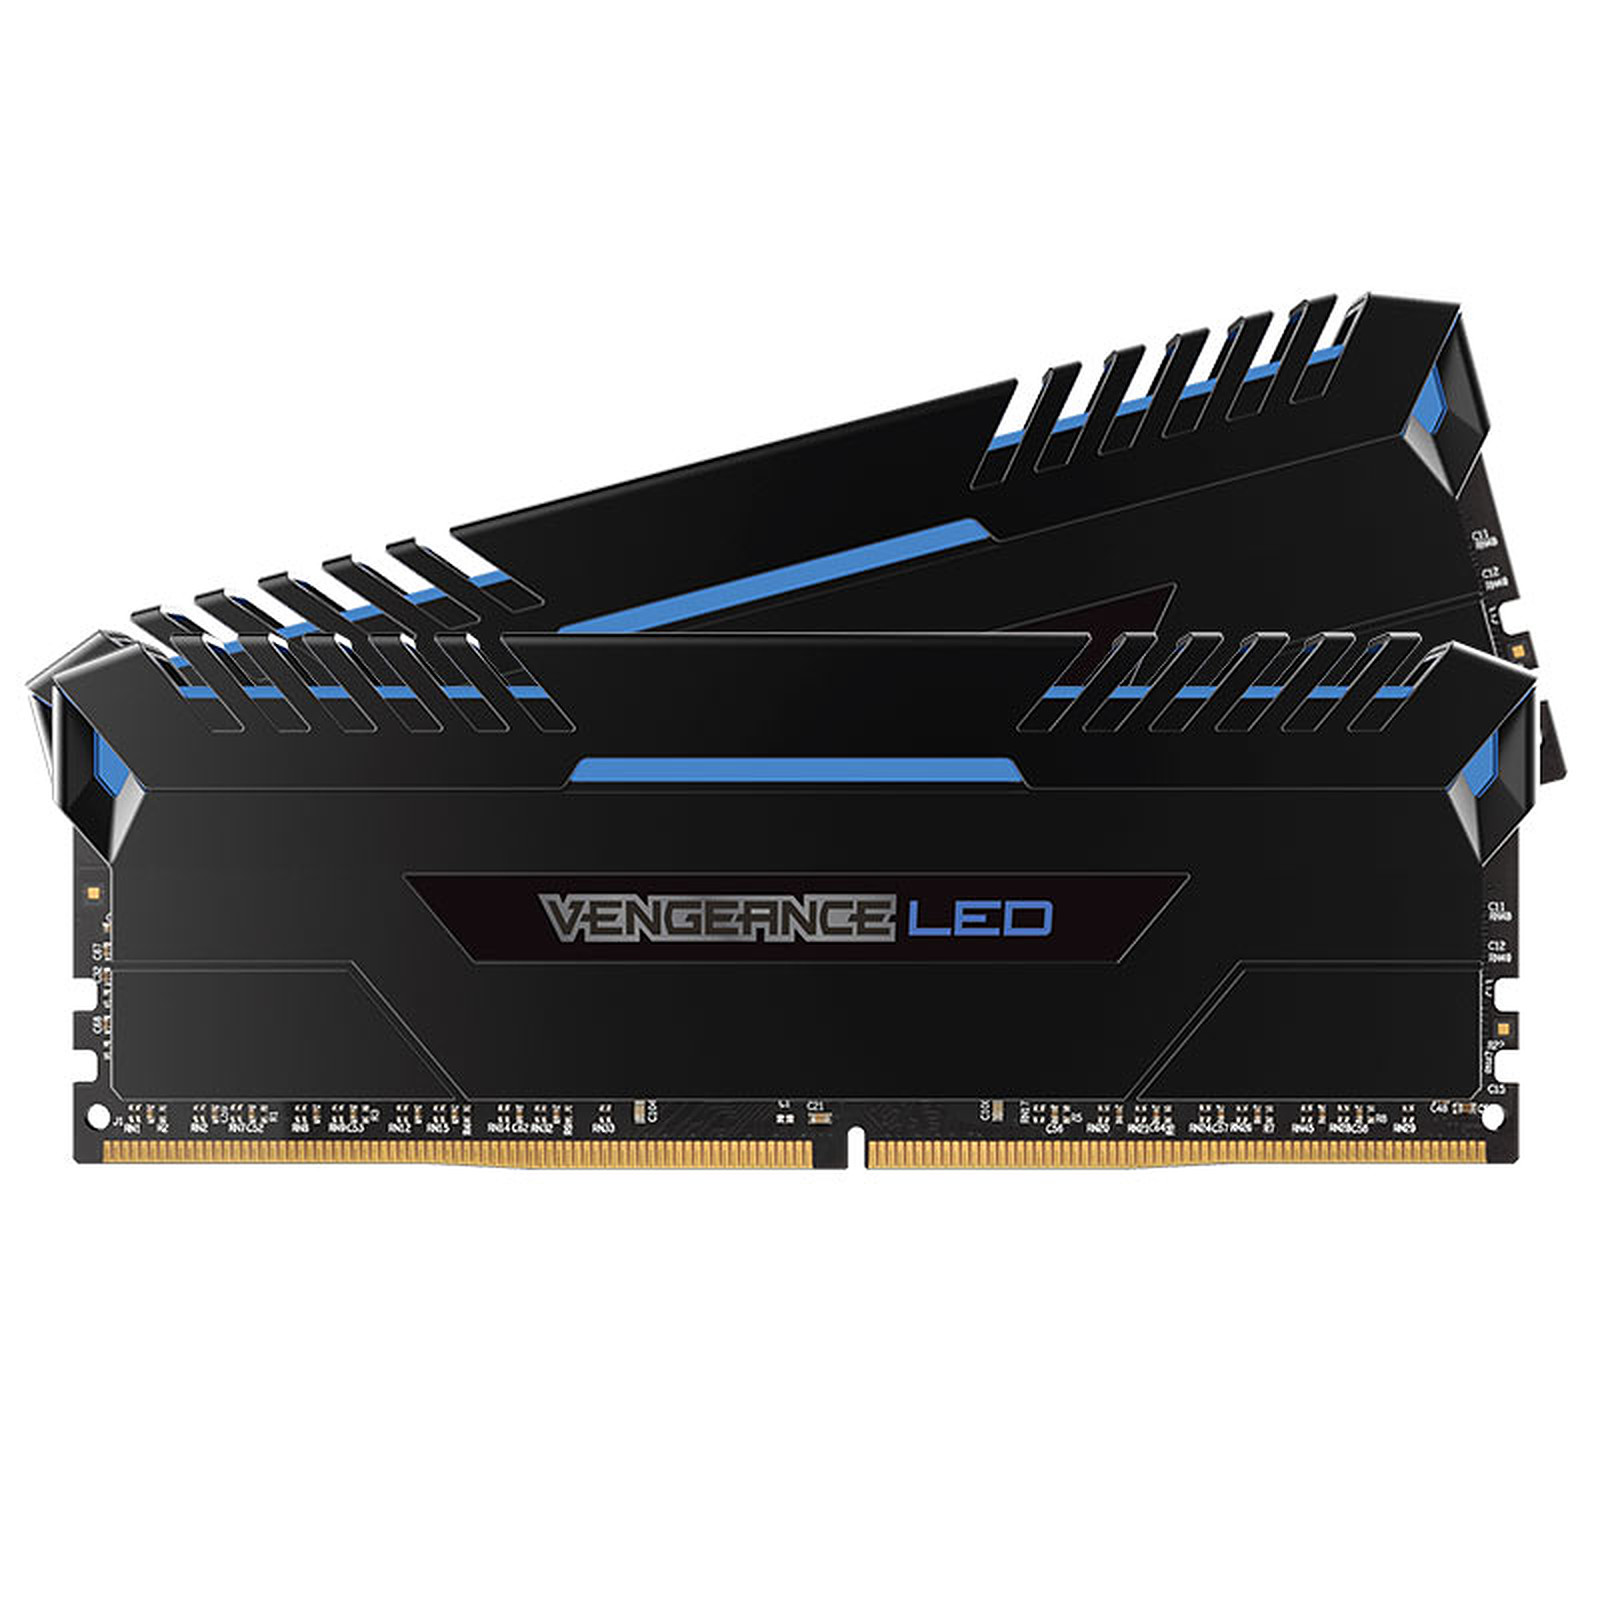 Corsair Vengeance LED Series 16GB (2x 8GB) DDR4 3000 MHz CL15 - Azul